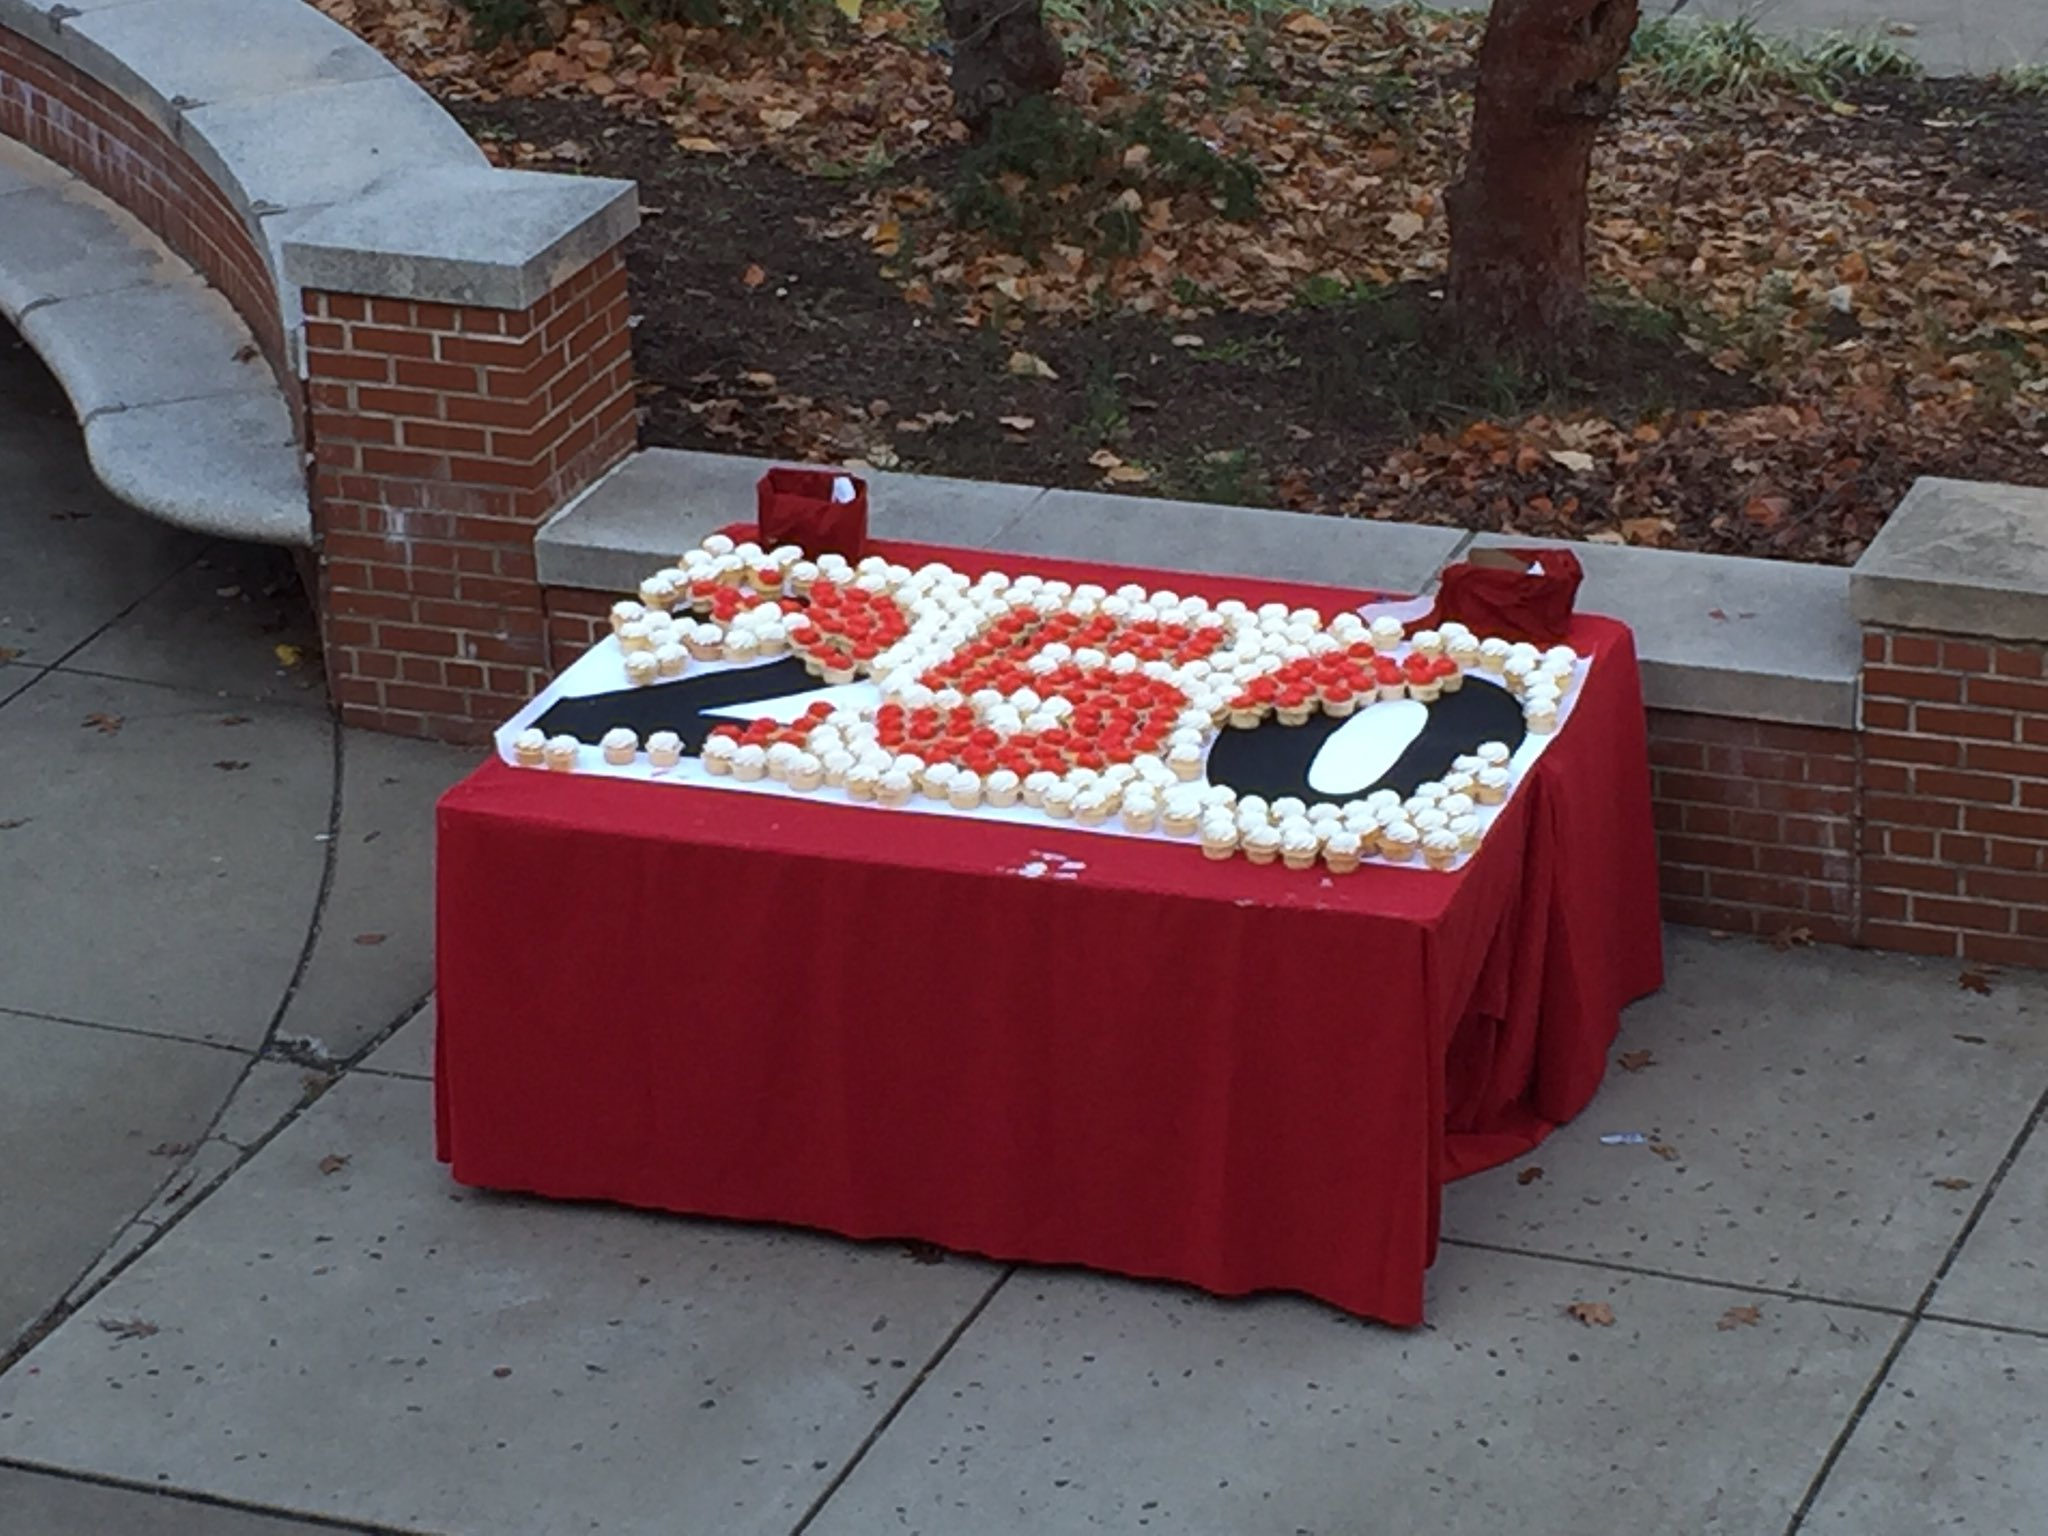 #Rutgers250 Happy Birthday from the Cook & Douglass Student Centers! https://t.co/dgONn8i220